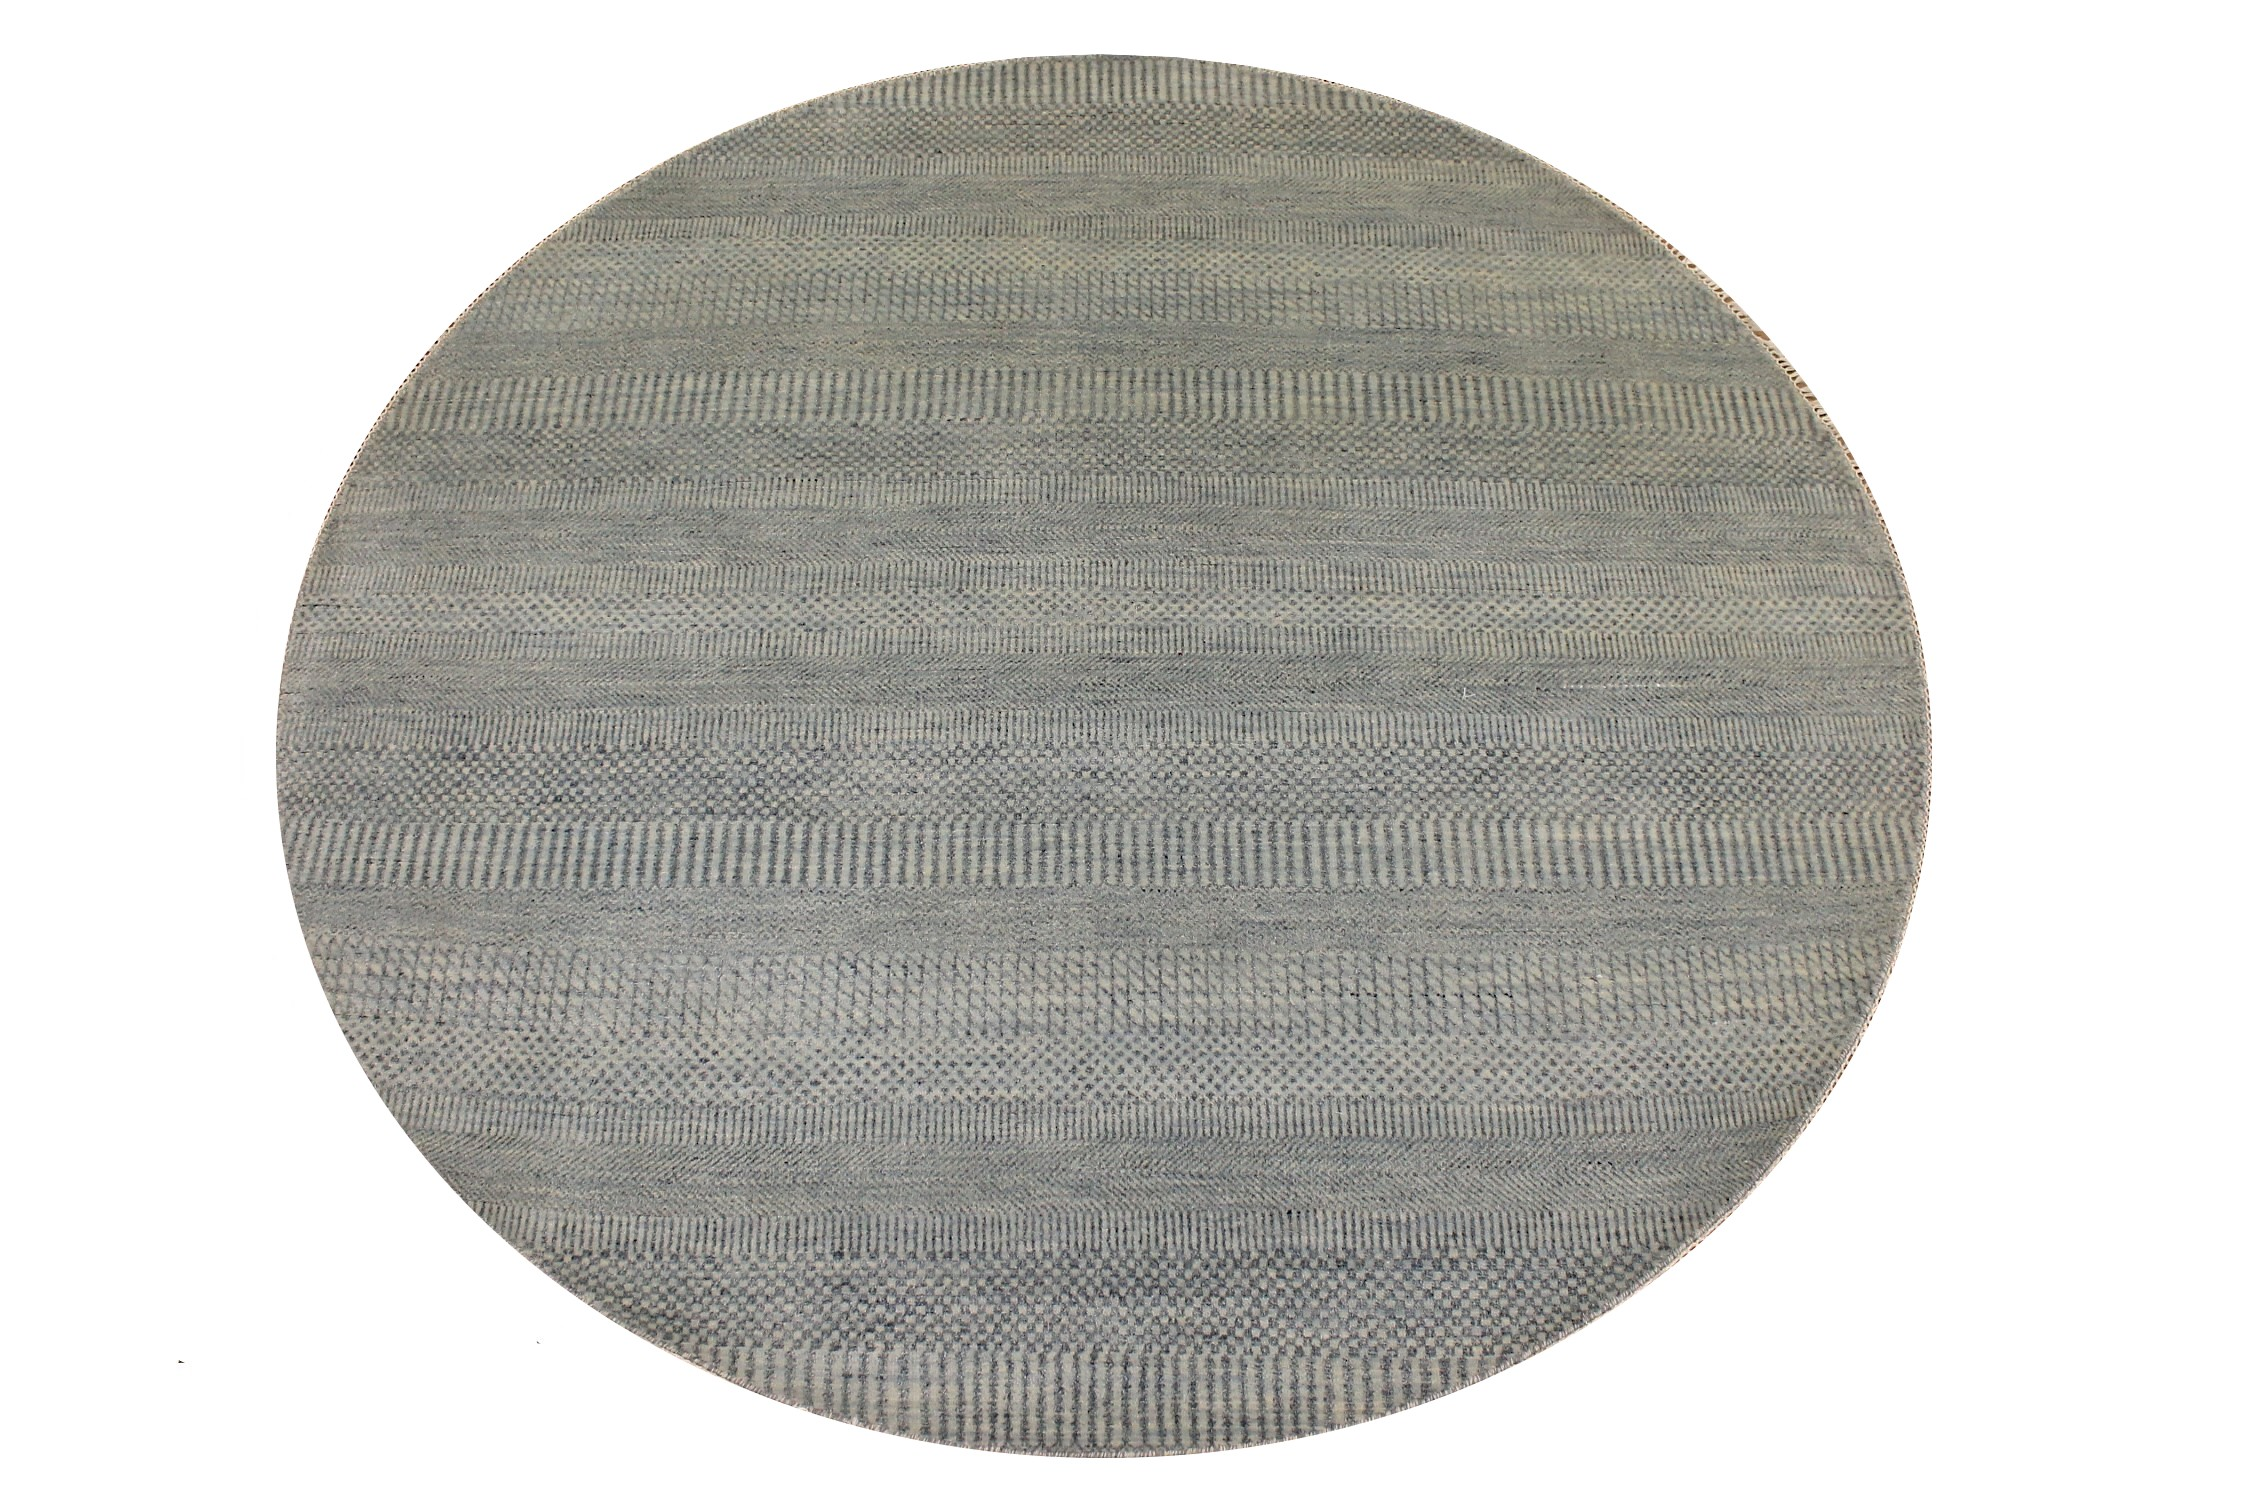 6 ft. - 7 ft. Round & Square Casual Hand Knotted Wool & Viscose Area Rug - MR024074